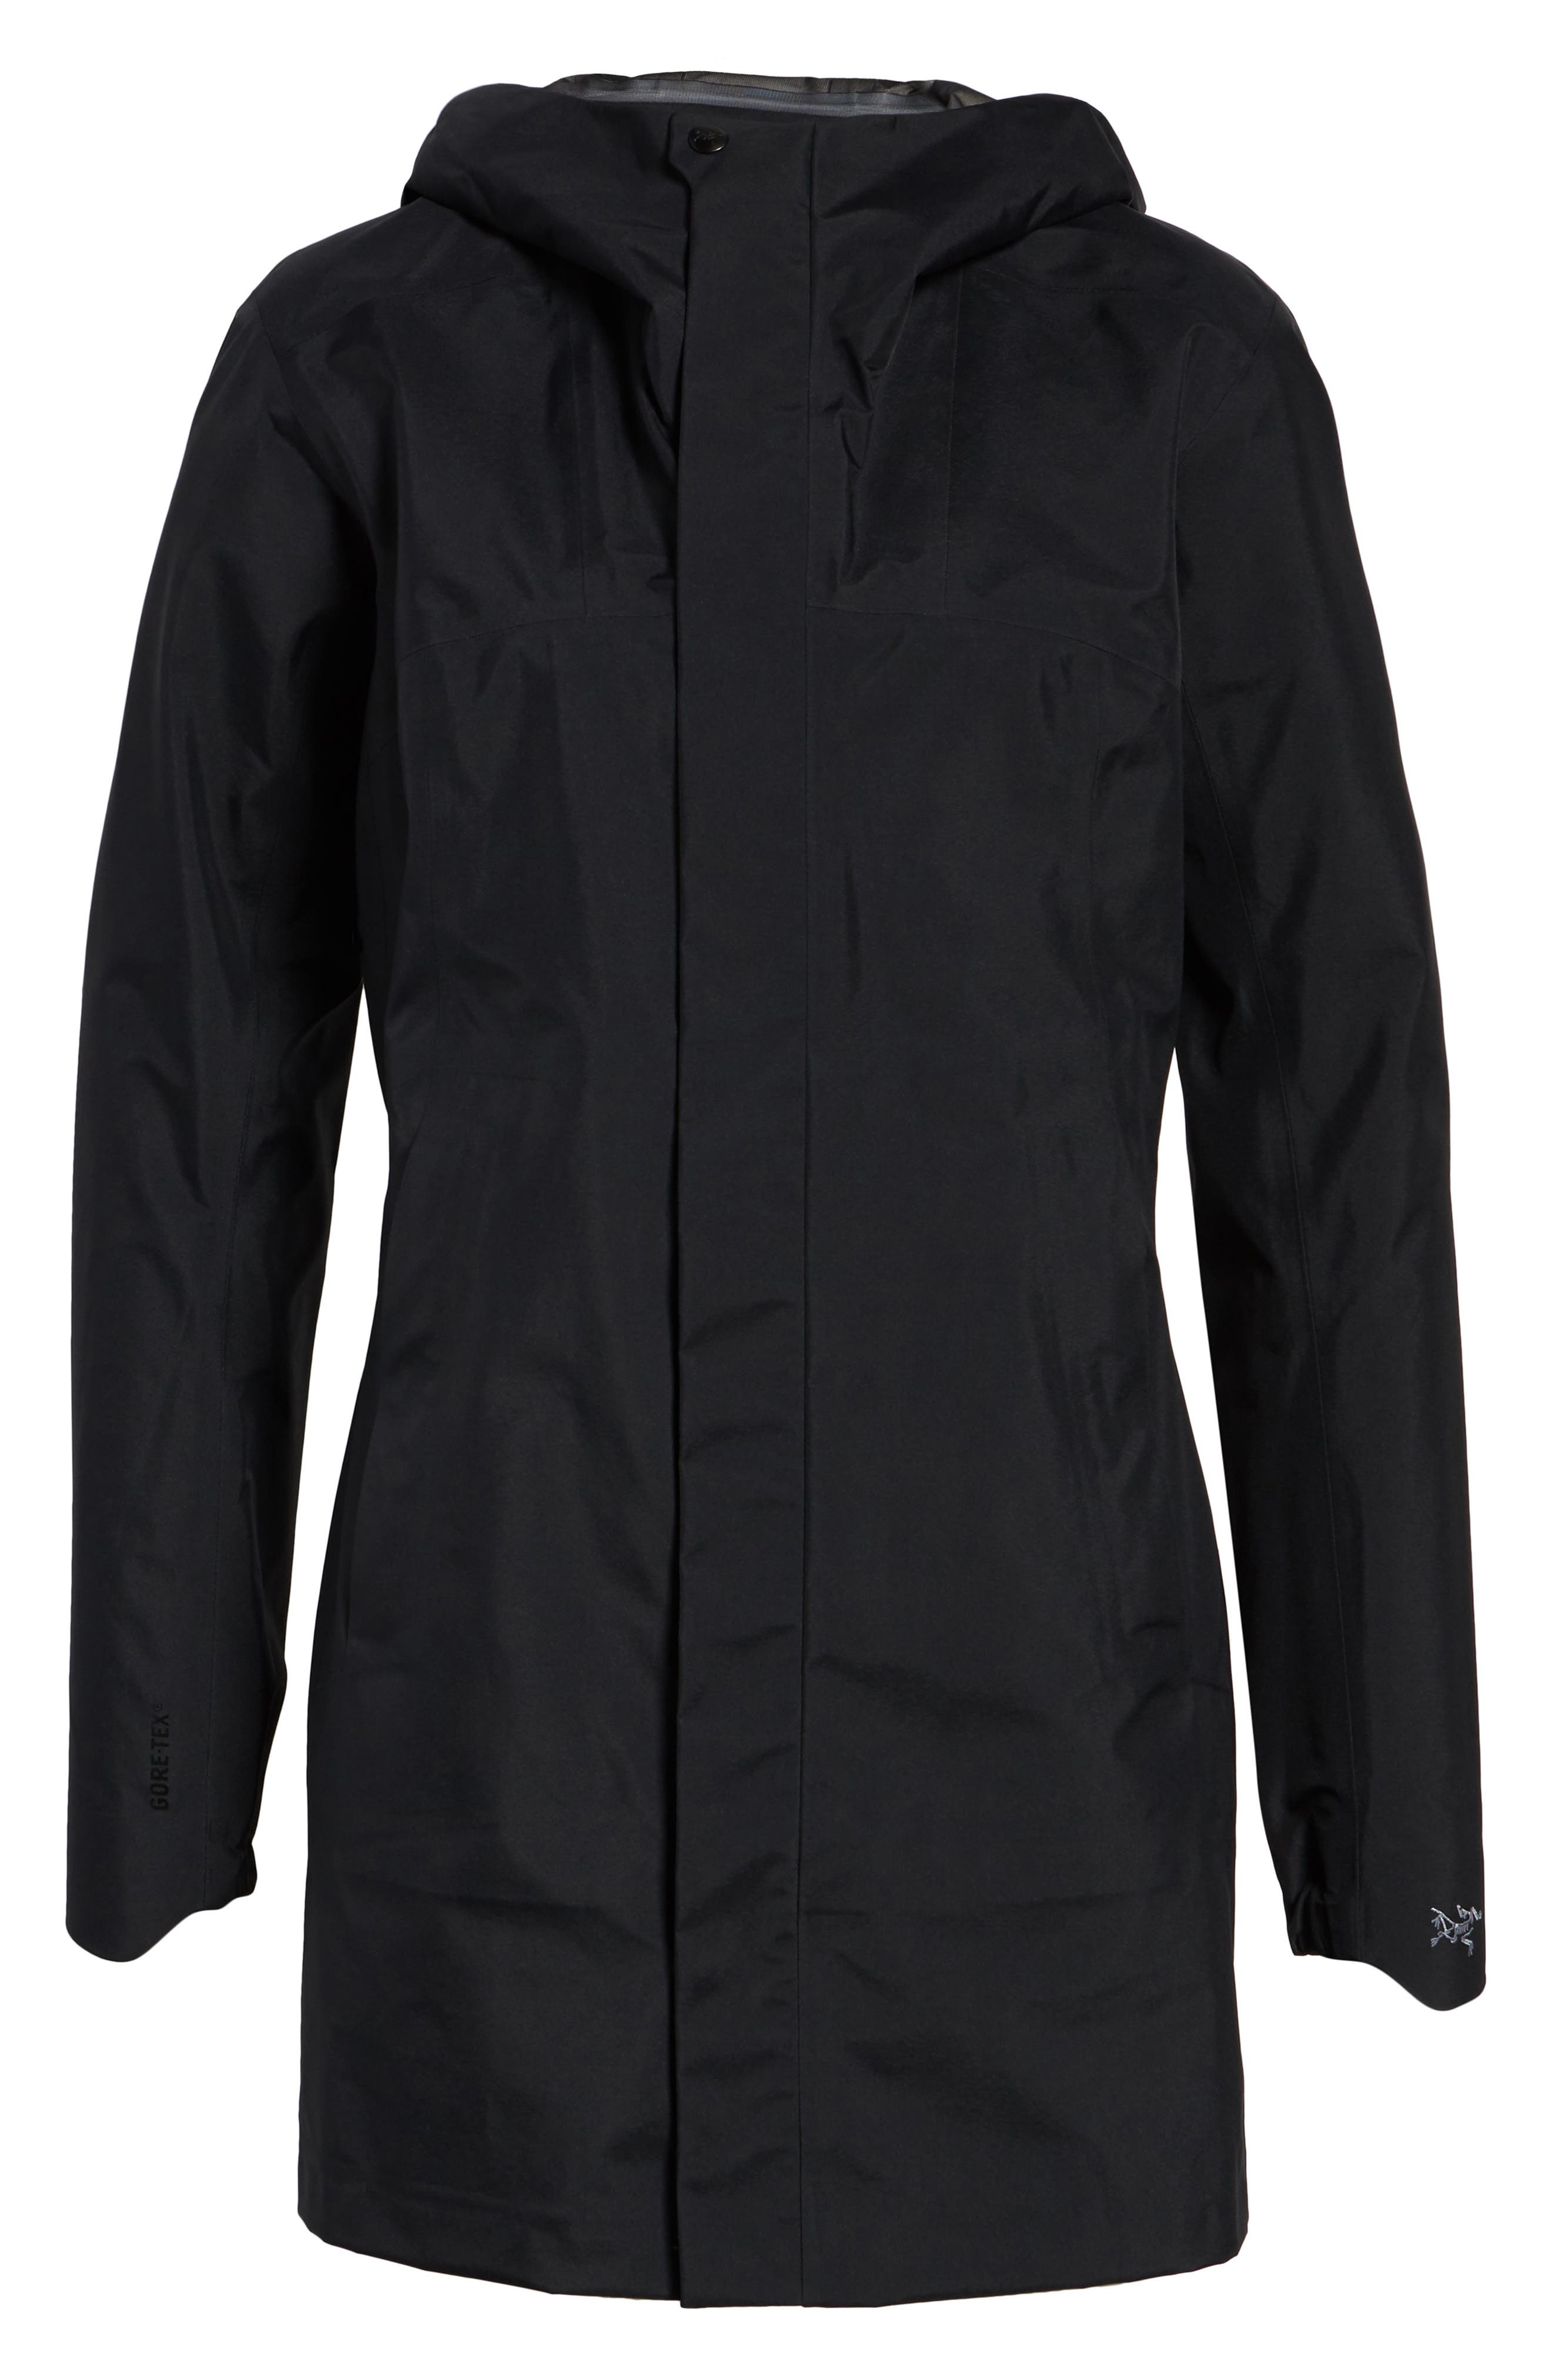 'Codetta' Waterproof Relaxed Fit Gore-Tex<sup>®</sup> 3L Rain Jacket,                             Alternate thumbnail 5, color,                             001